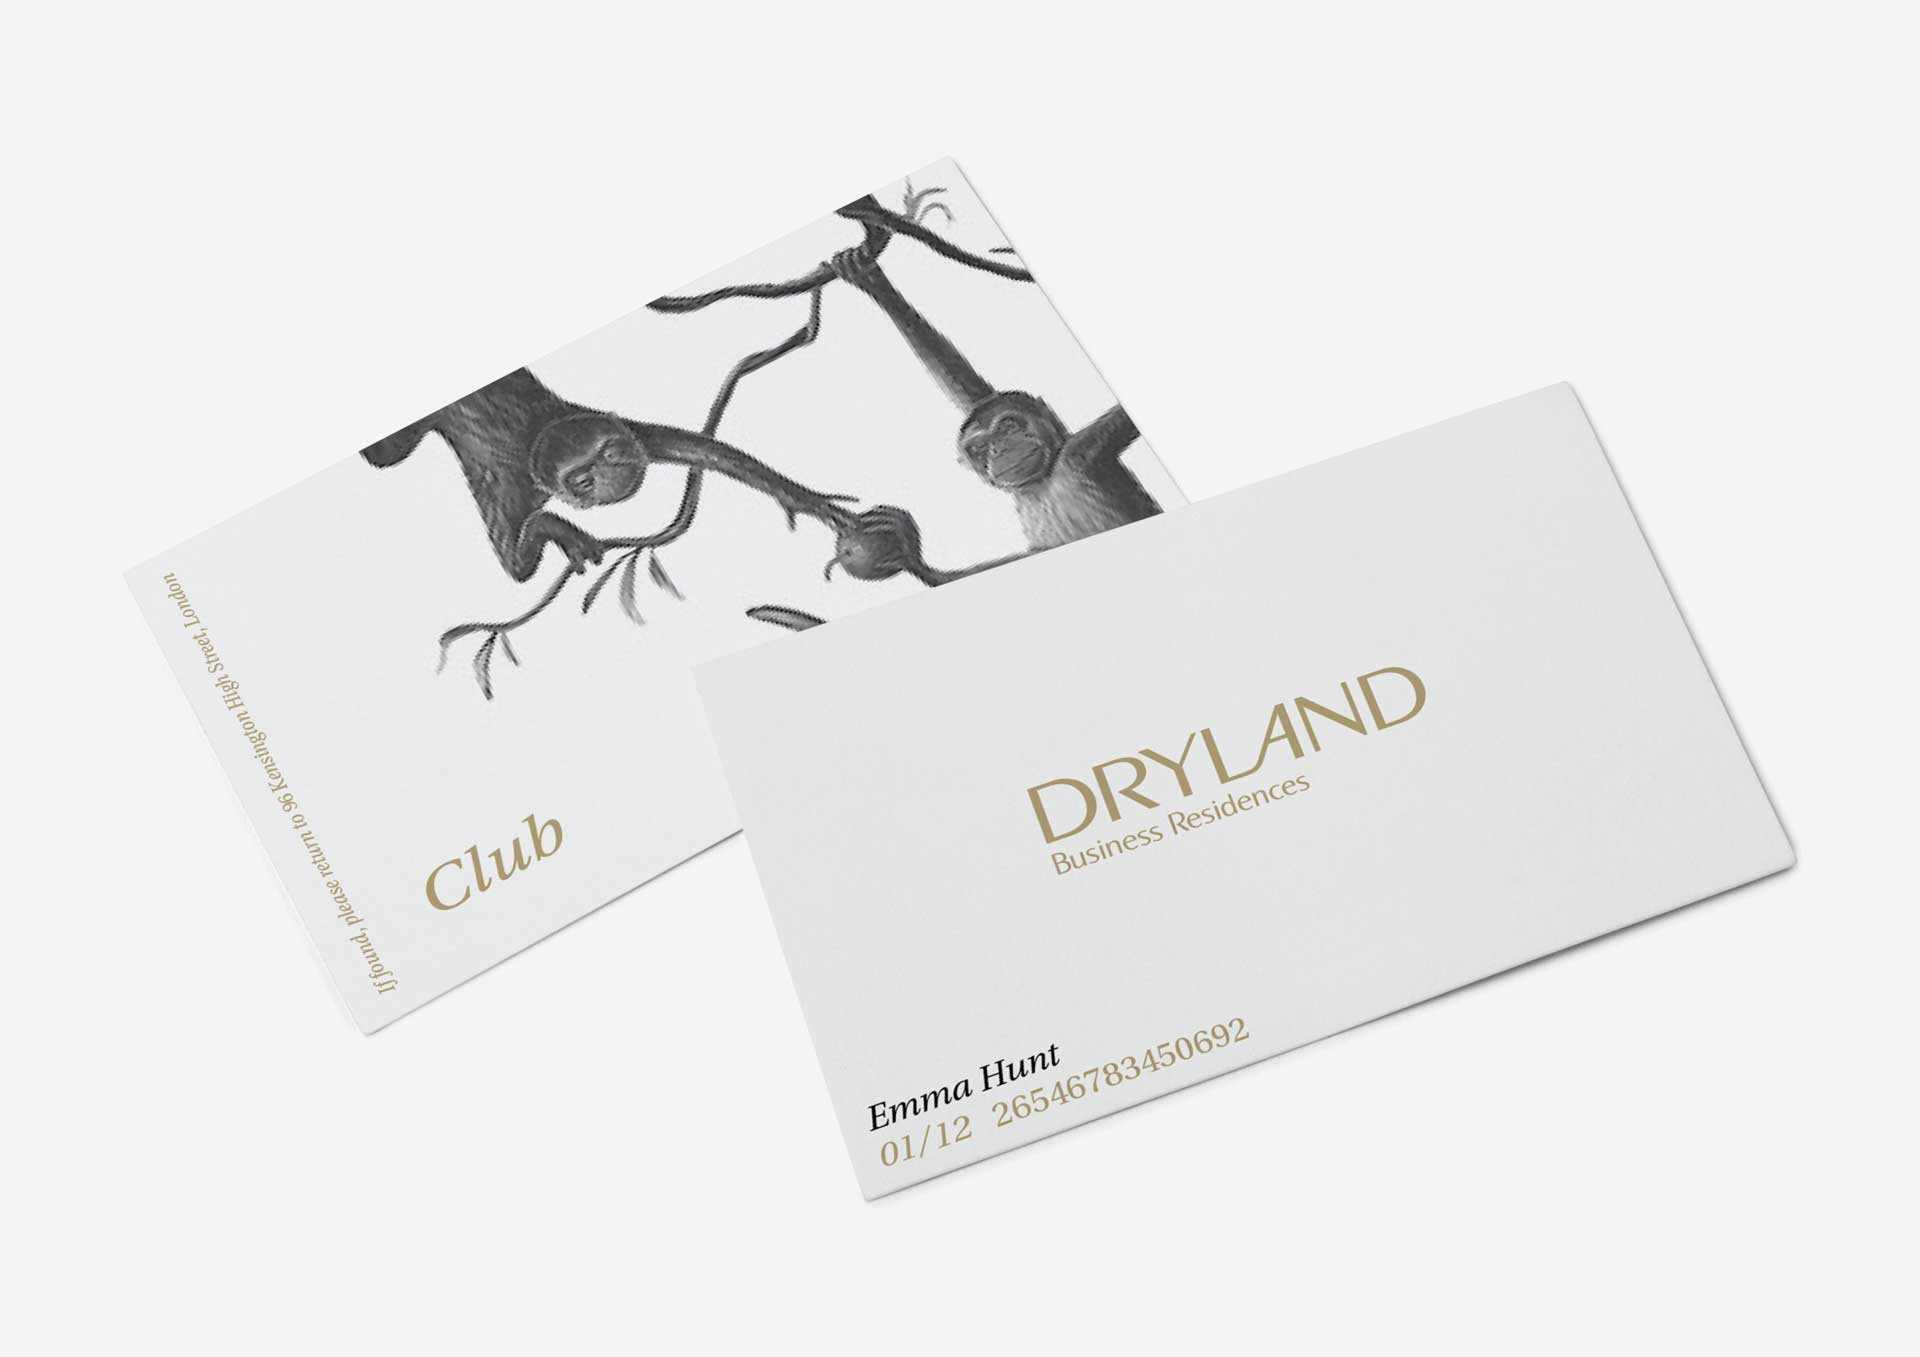 dryland-business-cards-2